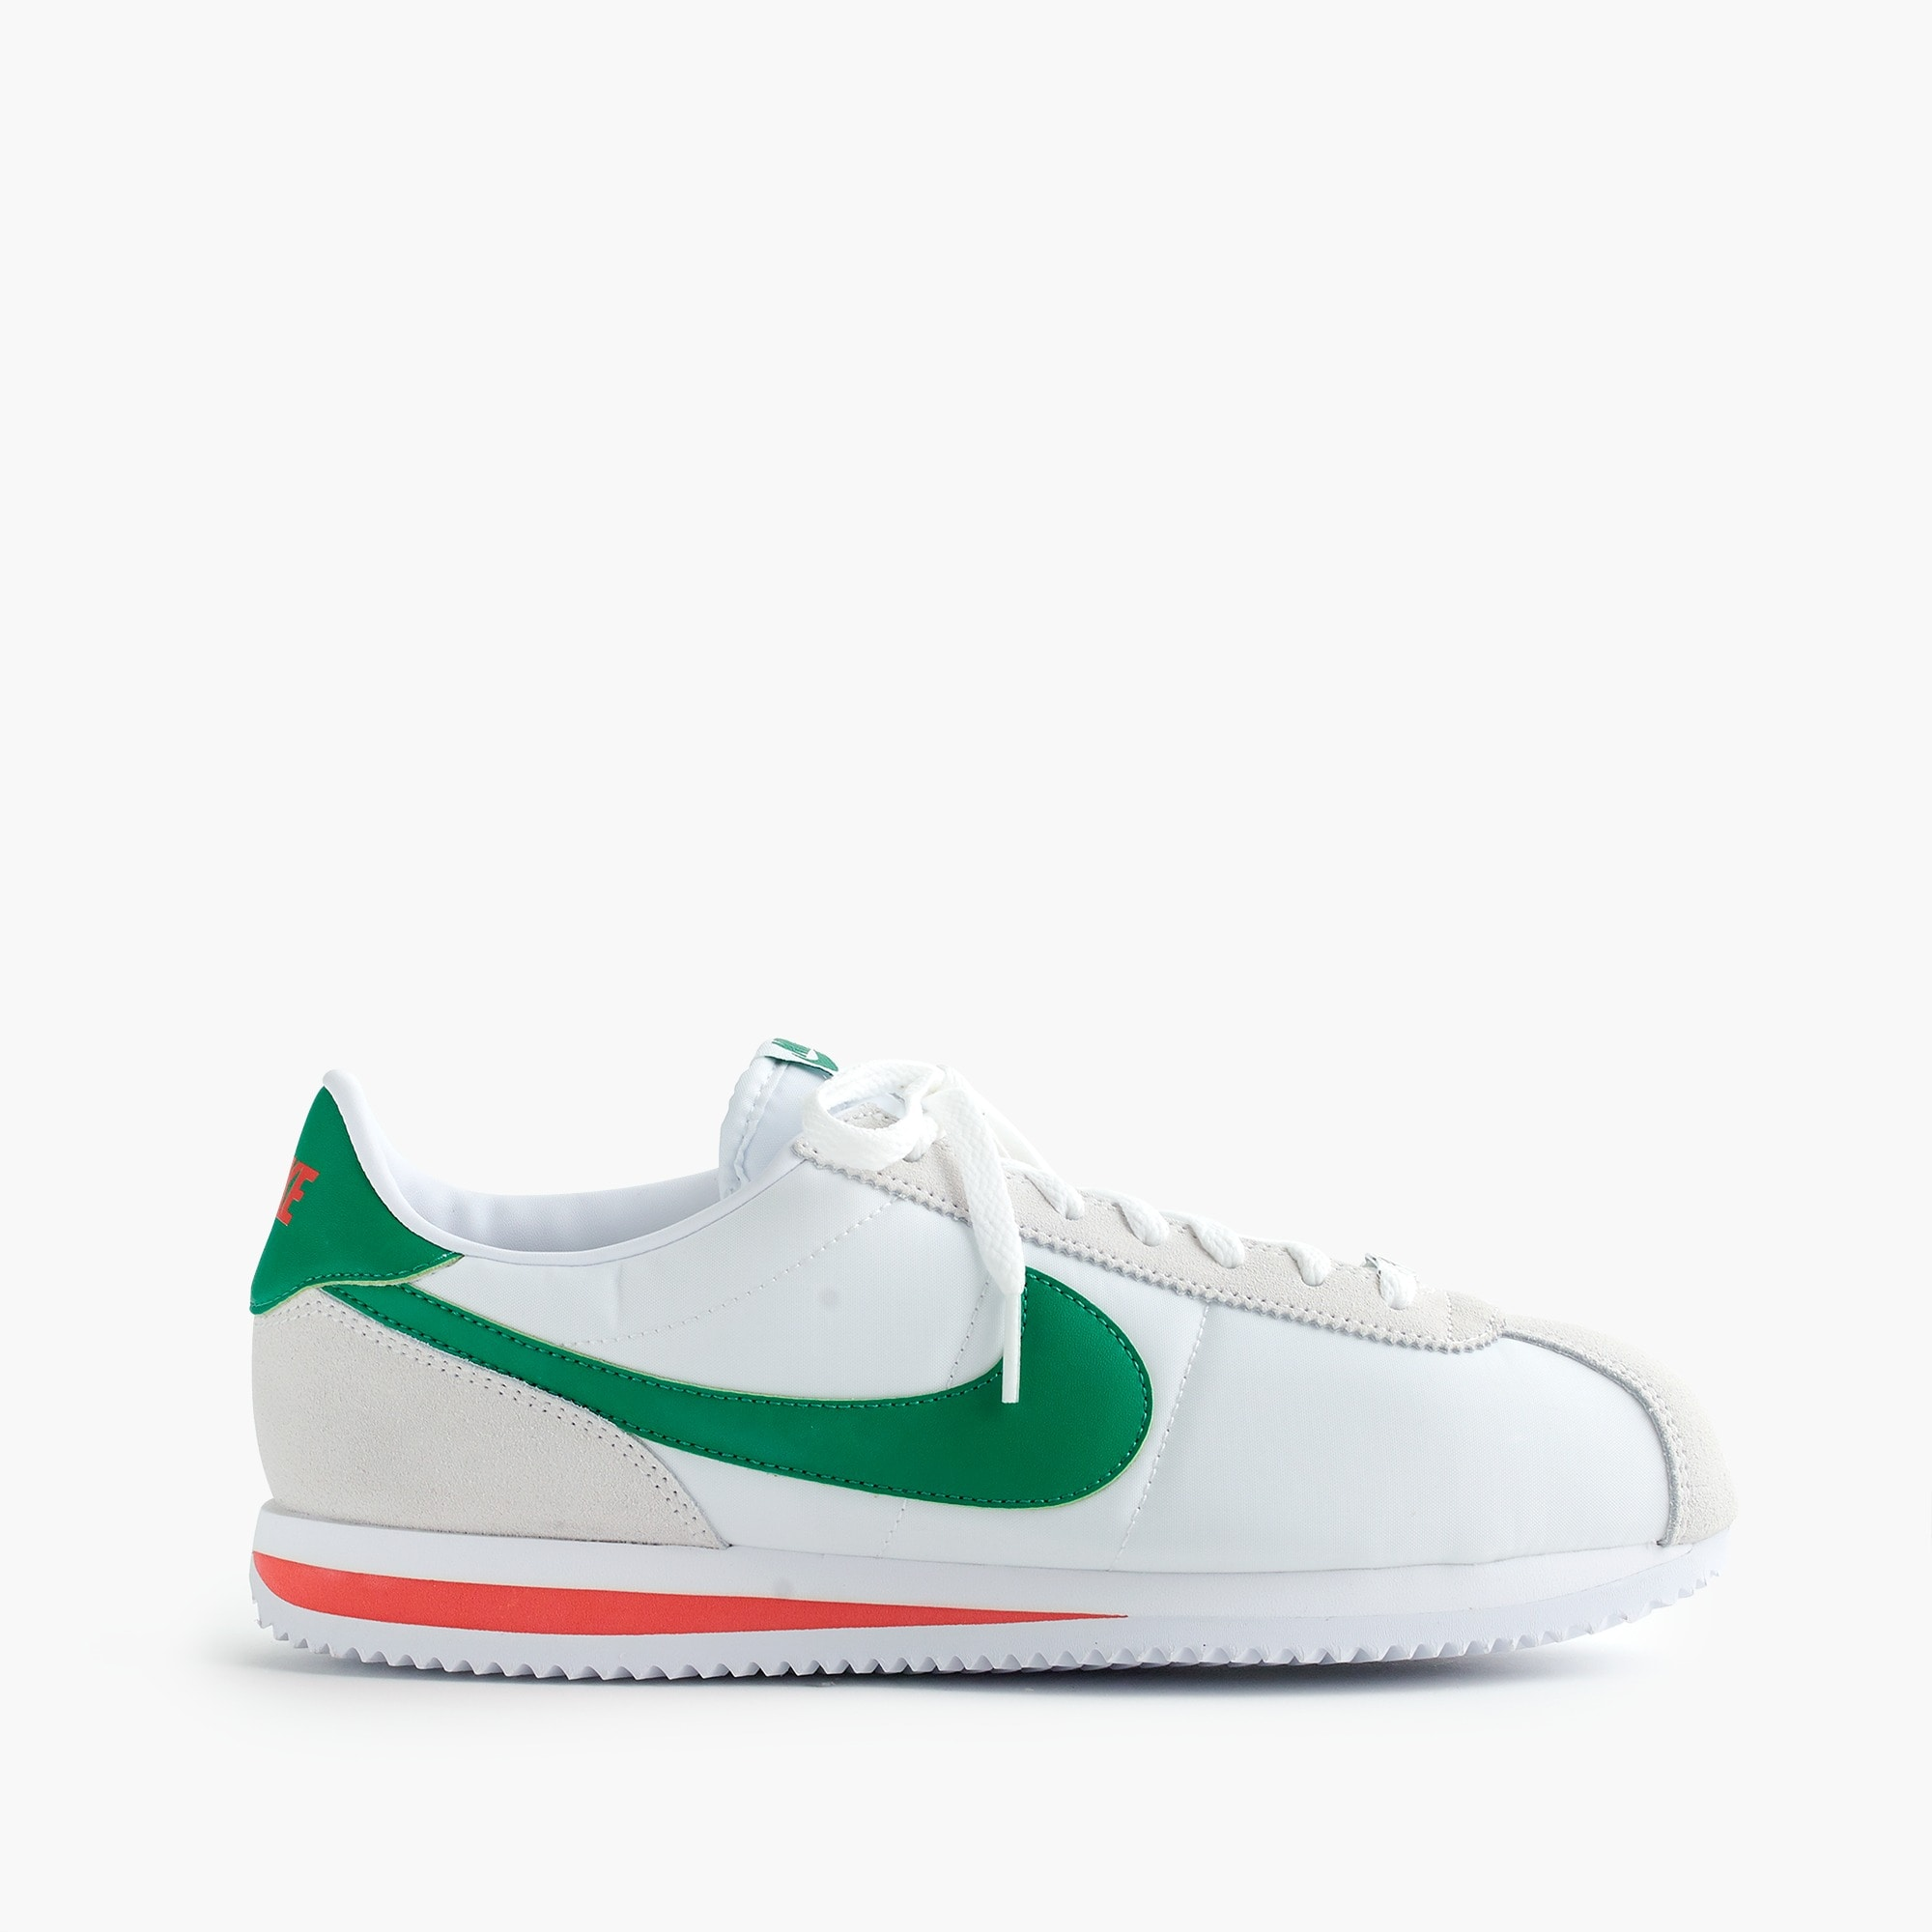 Nike® Cortez sneakers in white nylon